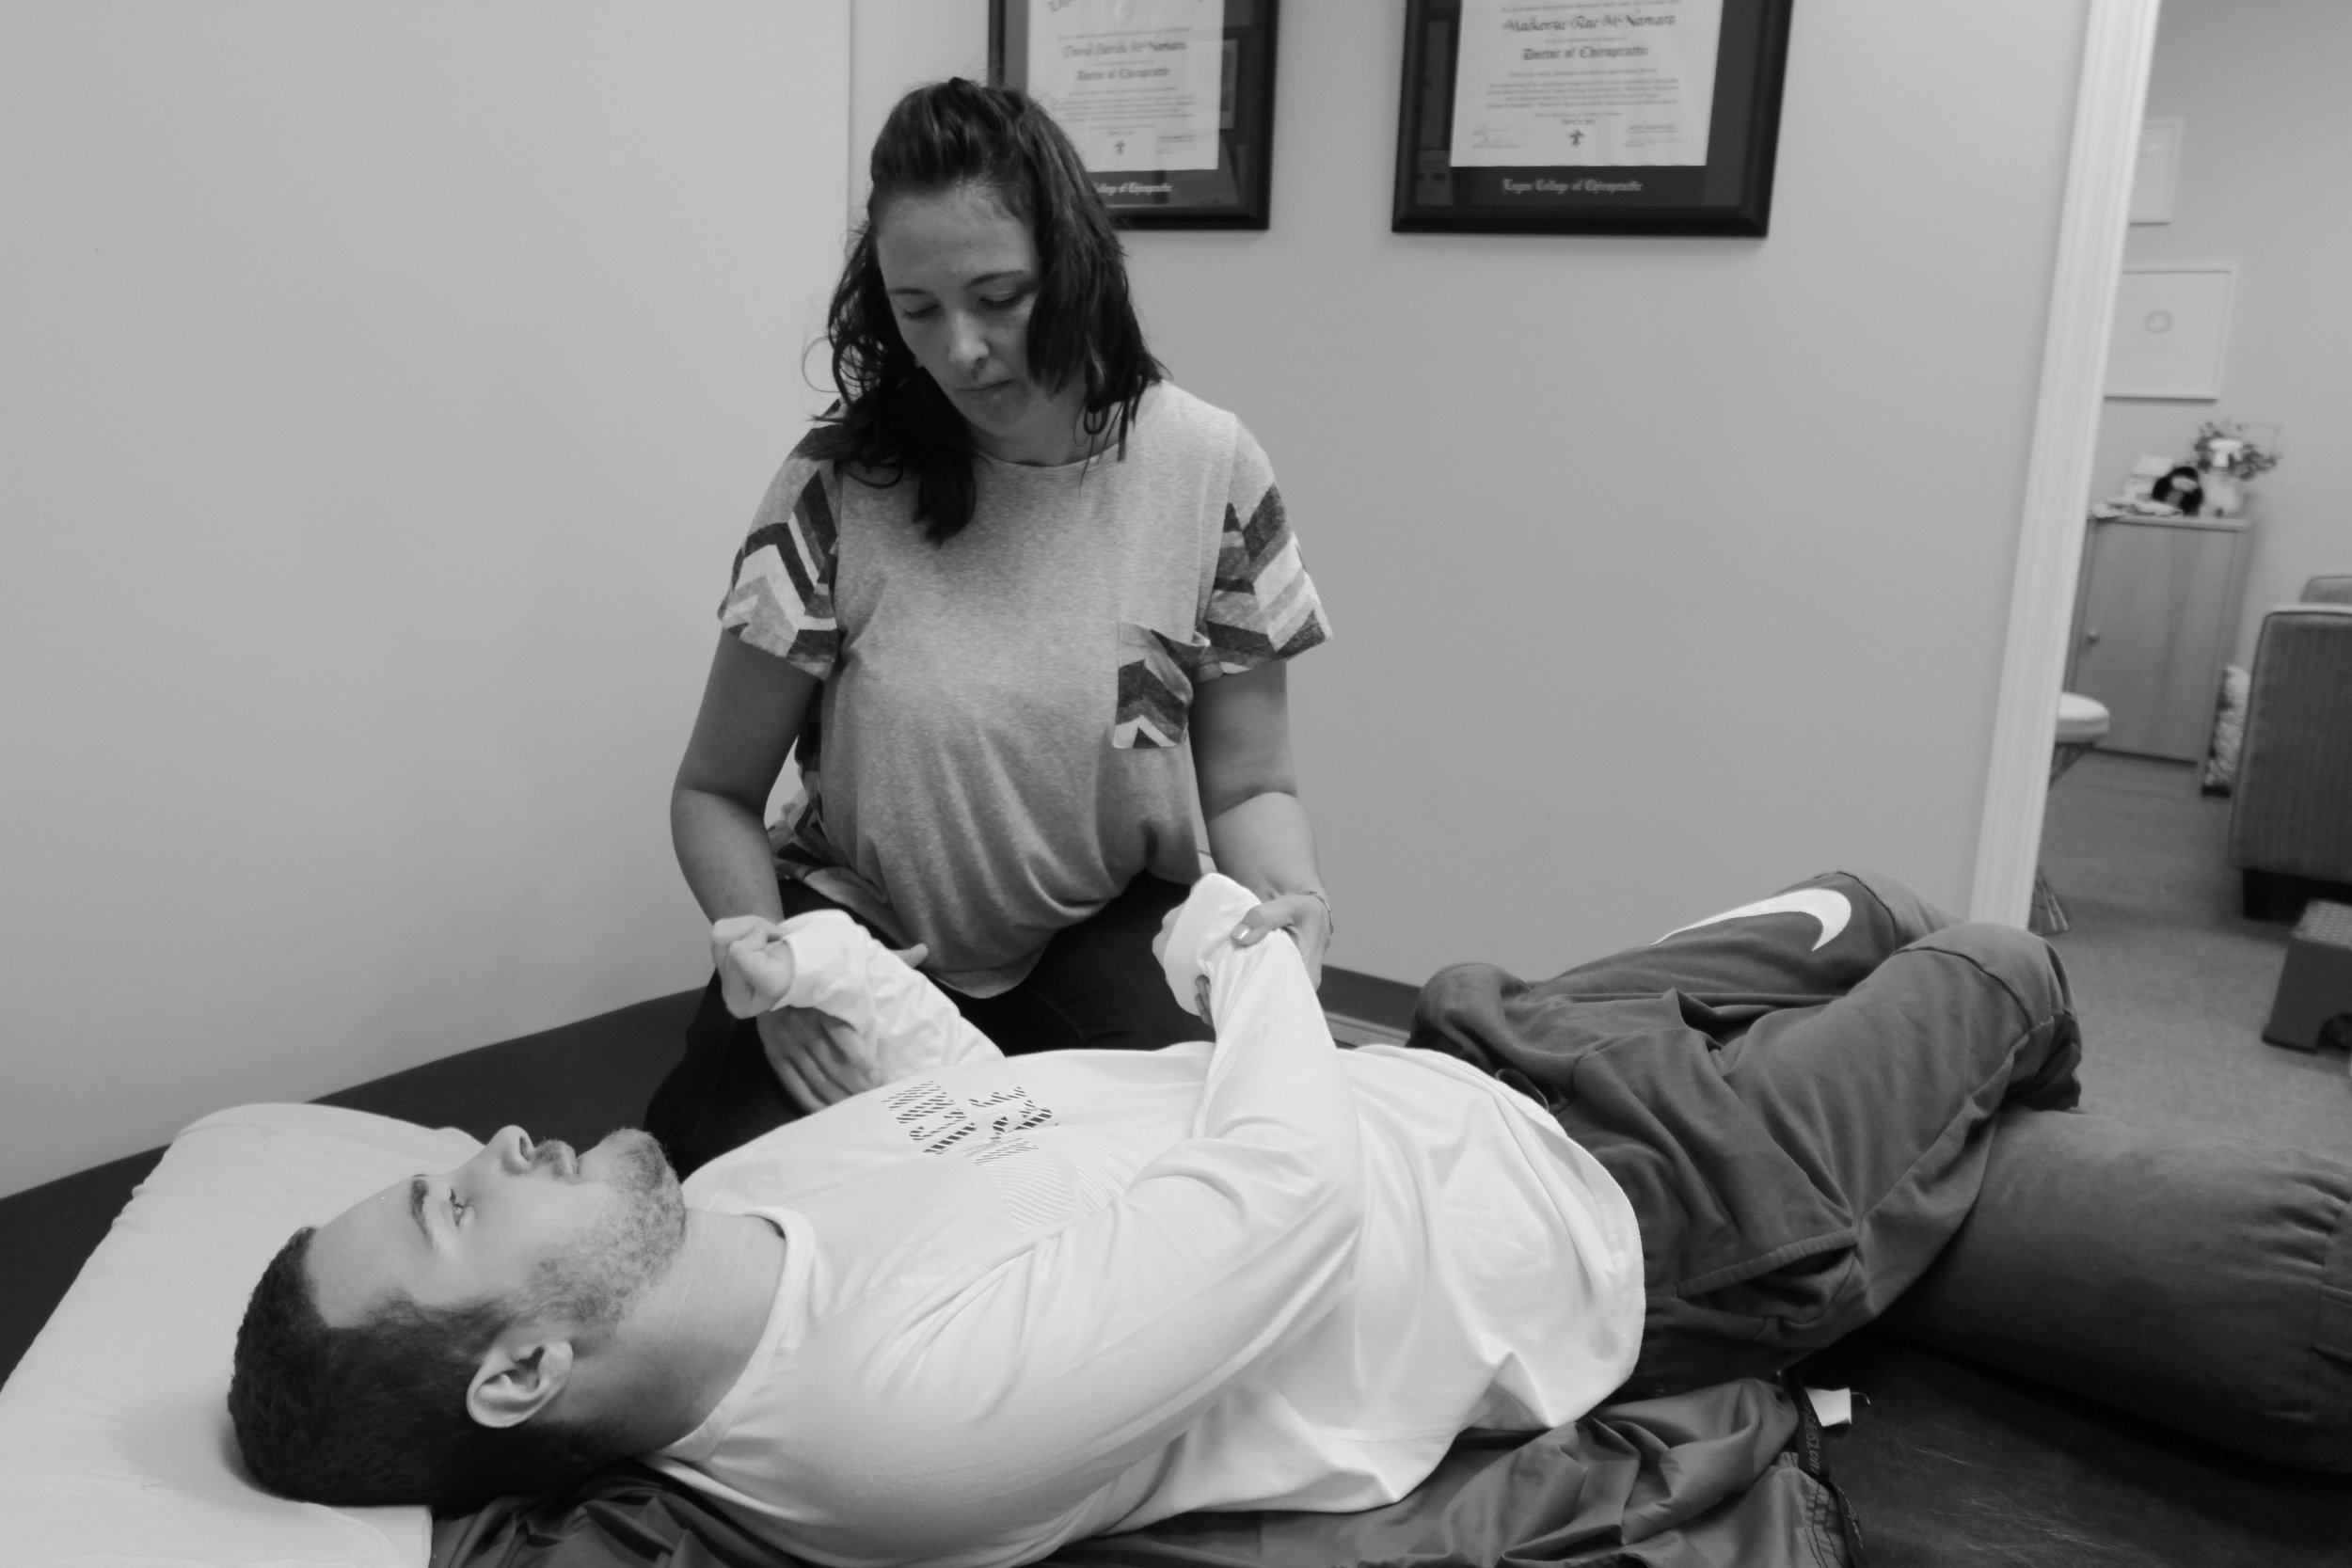 Tessa Thompson, a practitioner based in Indiana, works with Nadia in St. Louis.